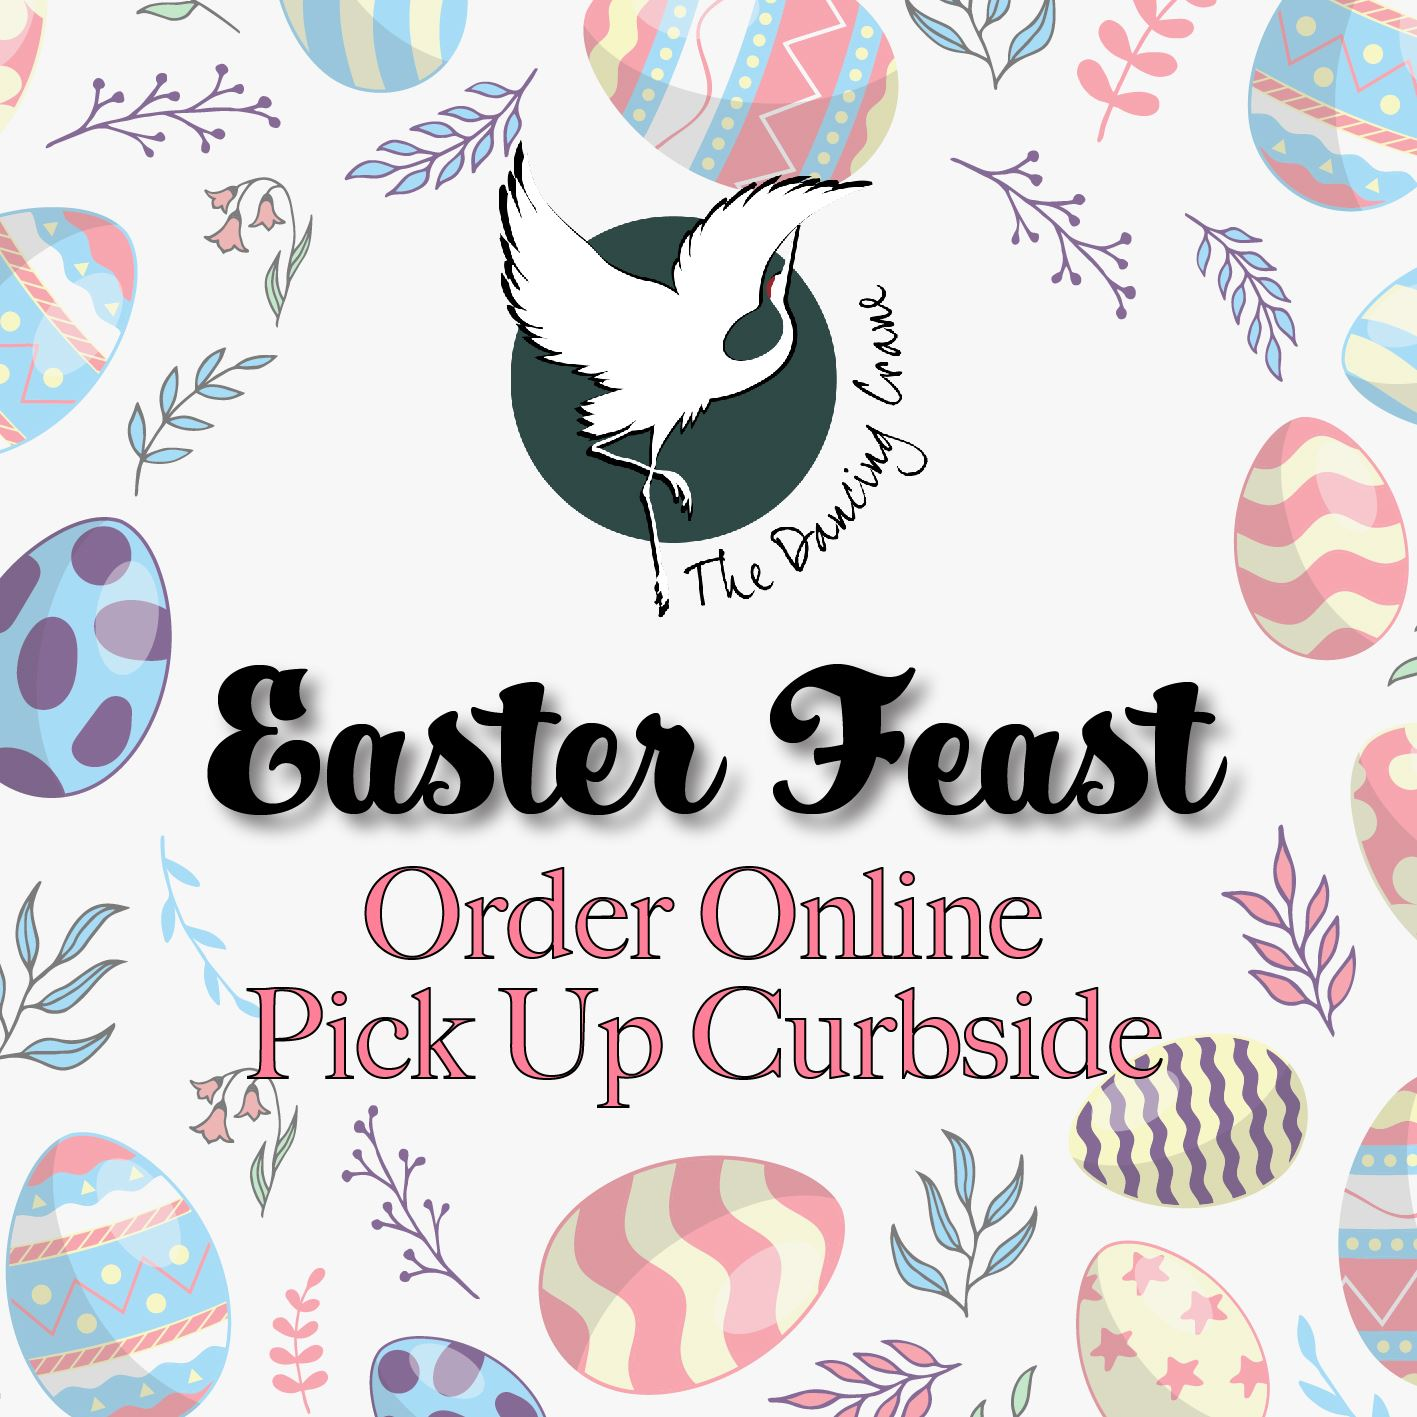 Order your Easter Feast for curbside pick up this Sunday!